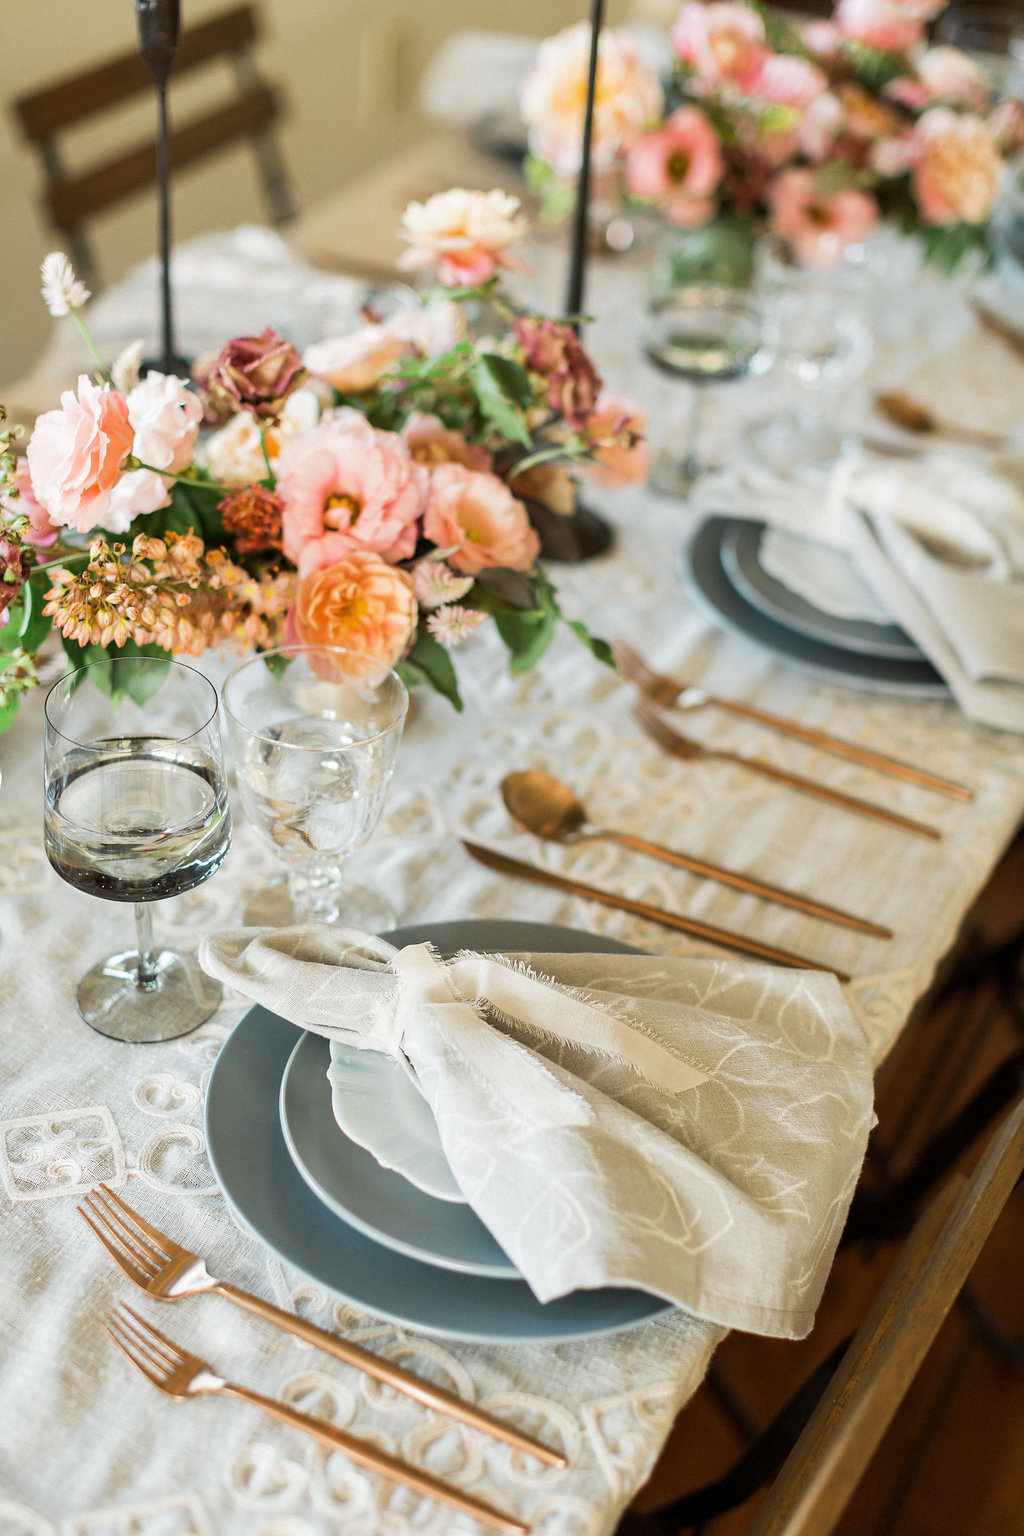 romantic wedding tablescapes with dusty blue and peachy pink - https://ruffledblog.com/cloudy-day-wedding-inspiration-with-a-hand-painted-bridal-gown